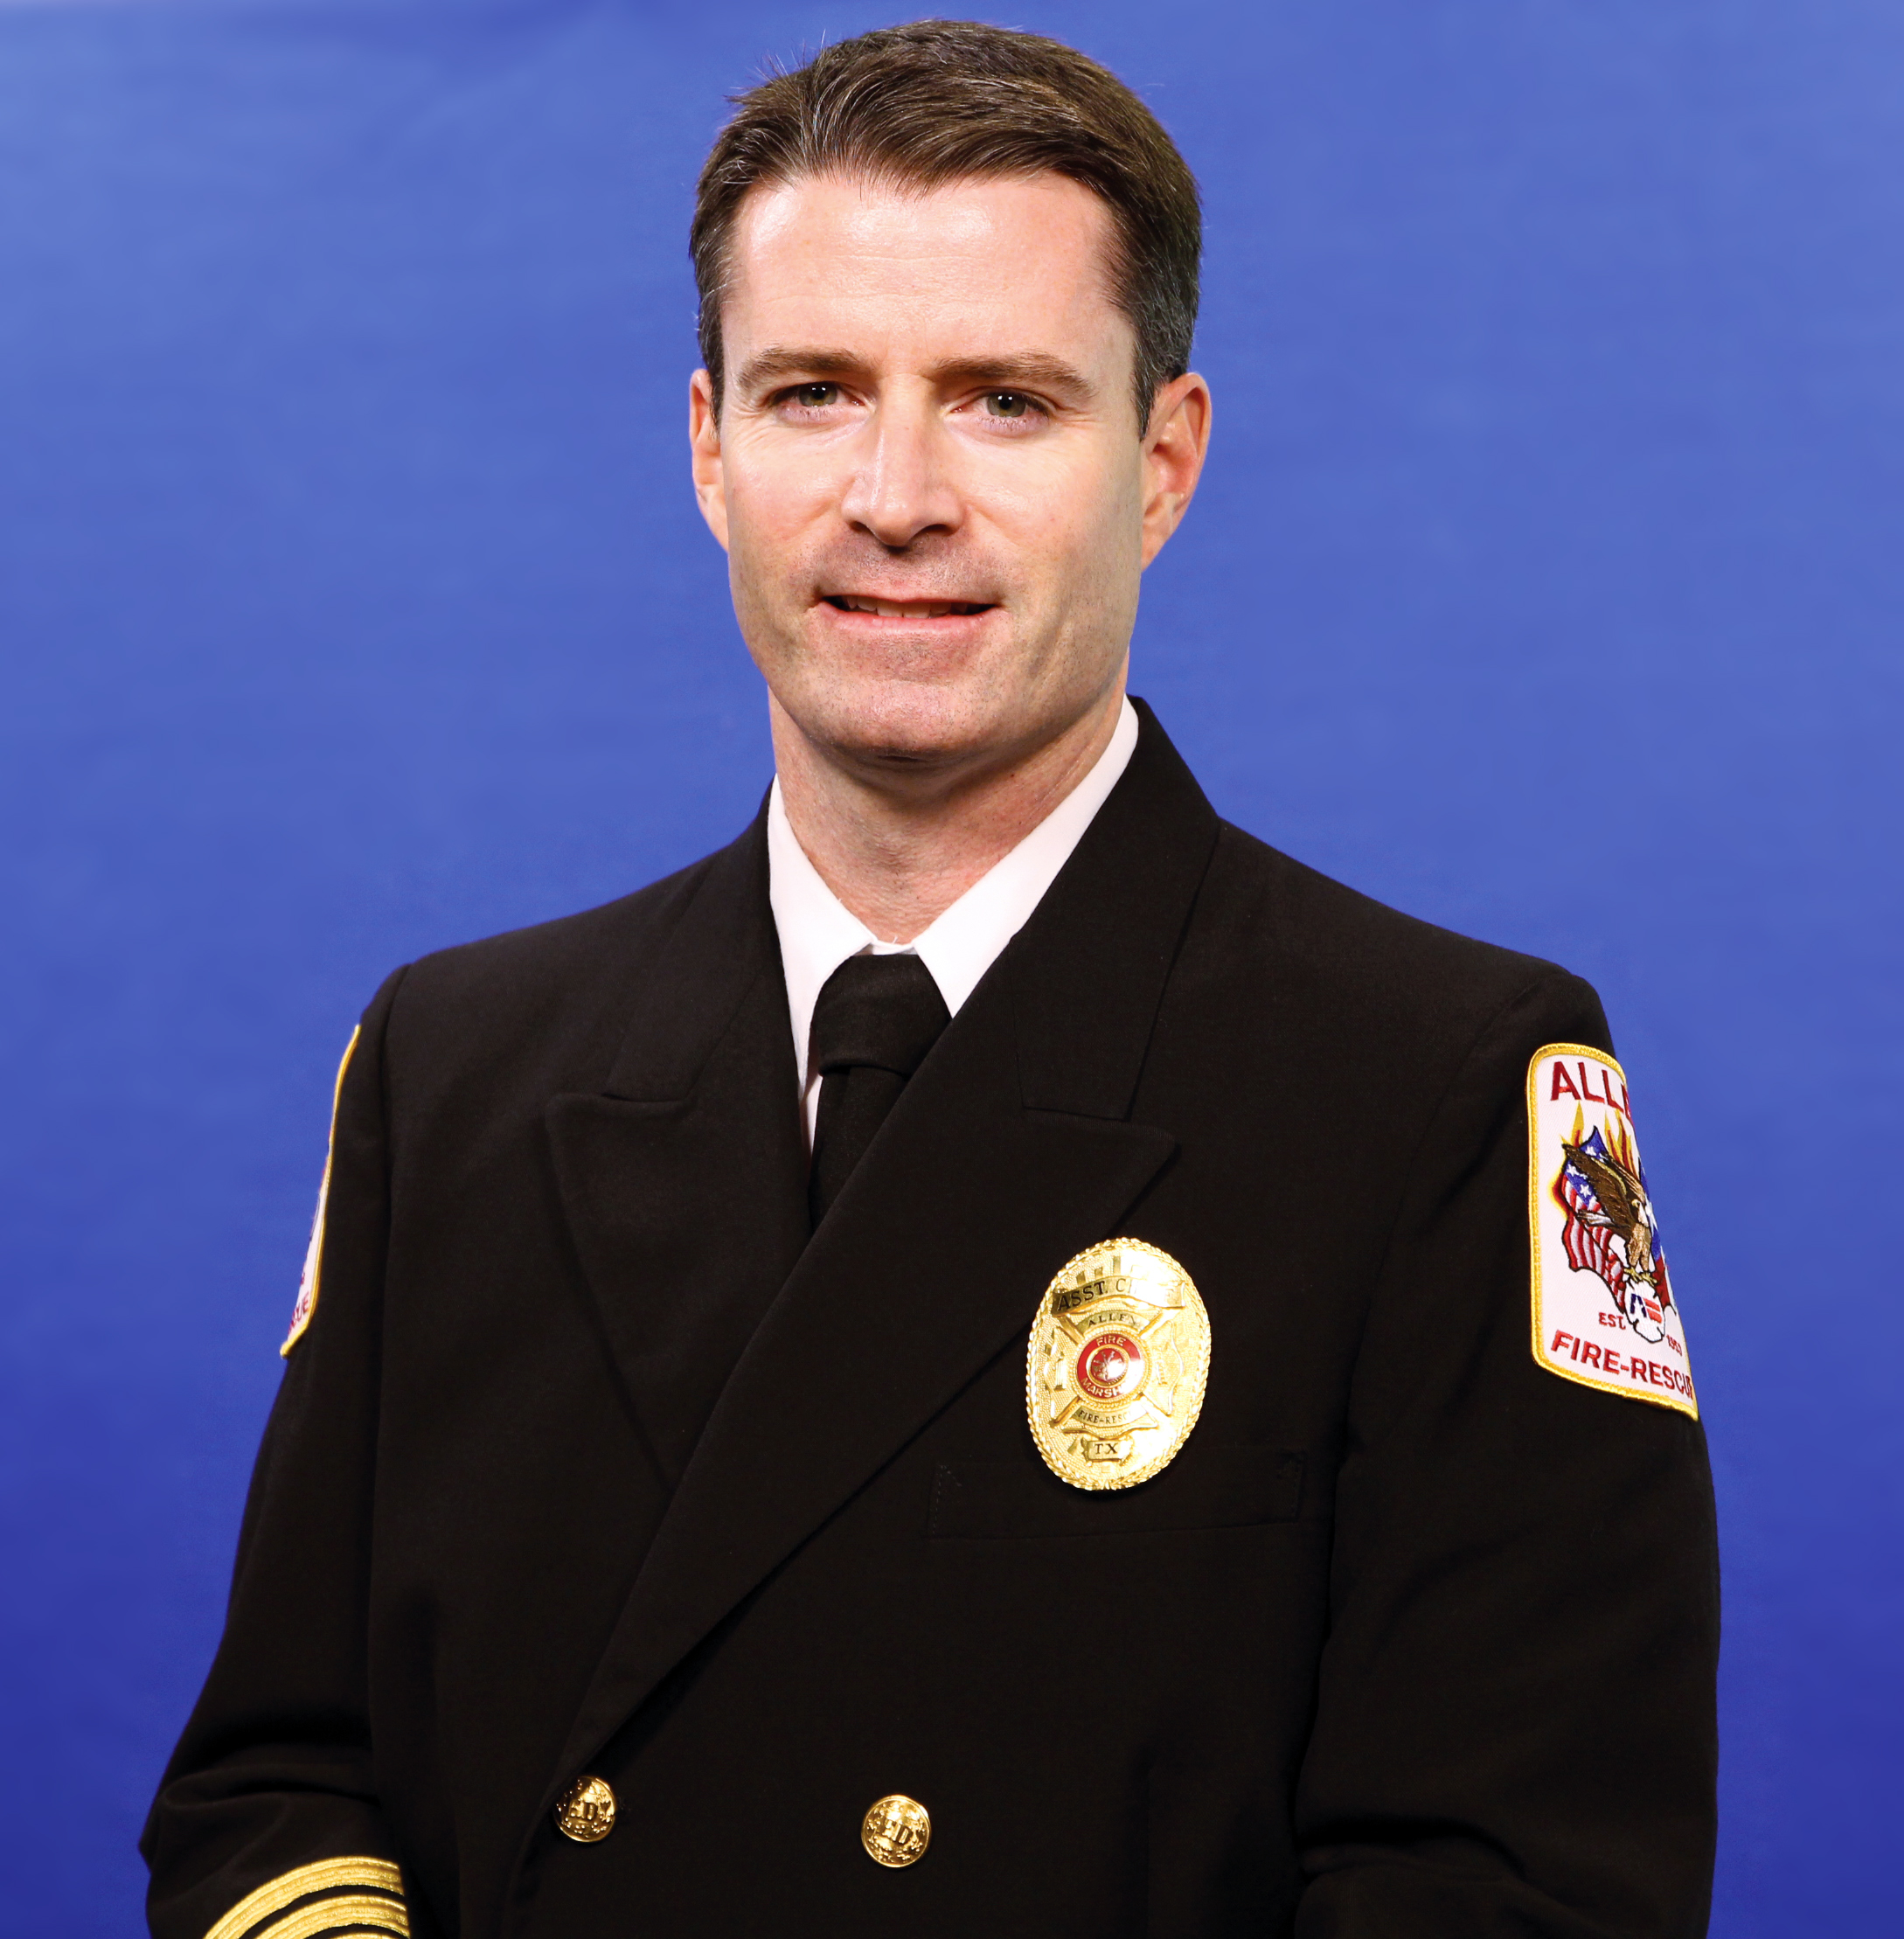 David Cannaday, Fire Marshal